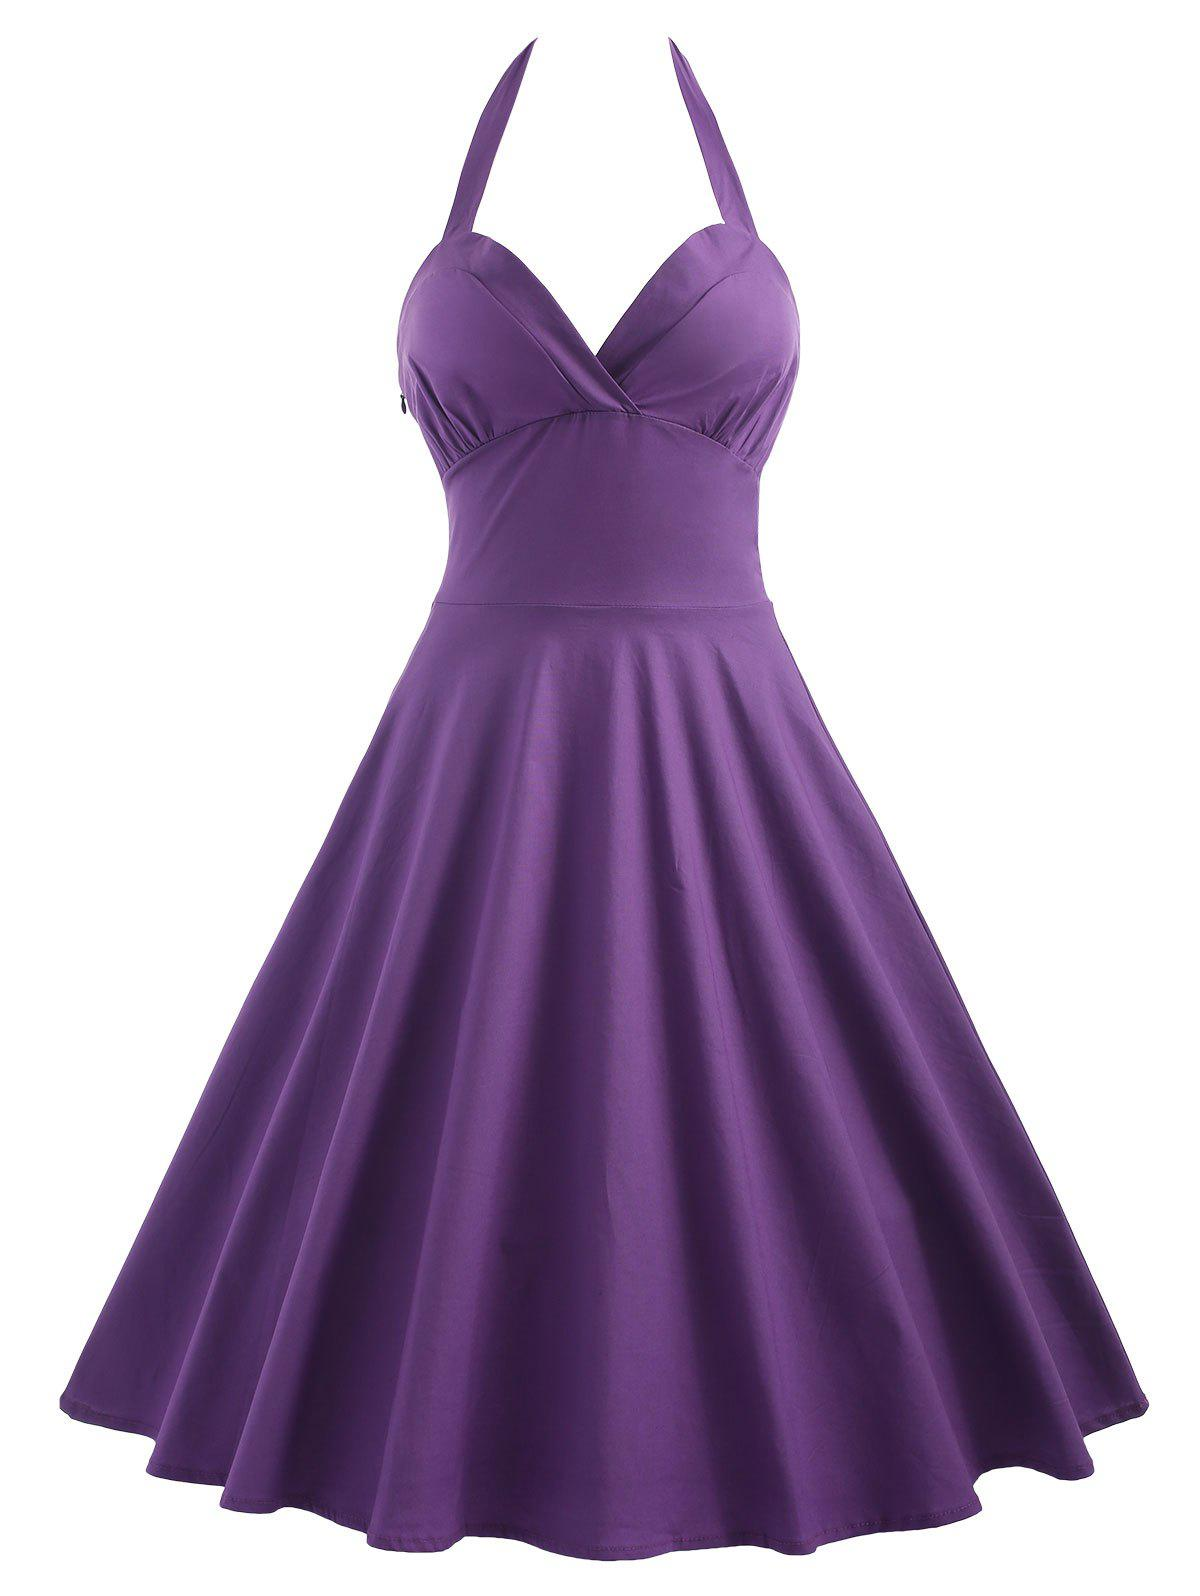 Halter Vintage Flare Pin Up Dress - PURPLE 2XL